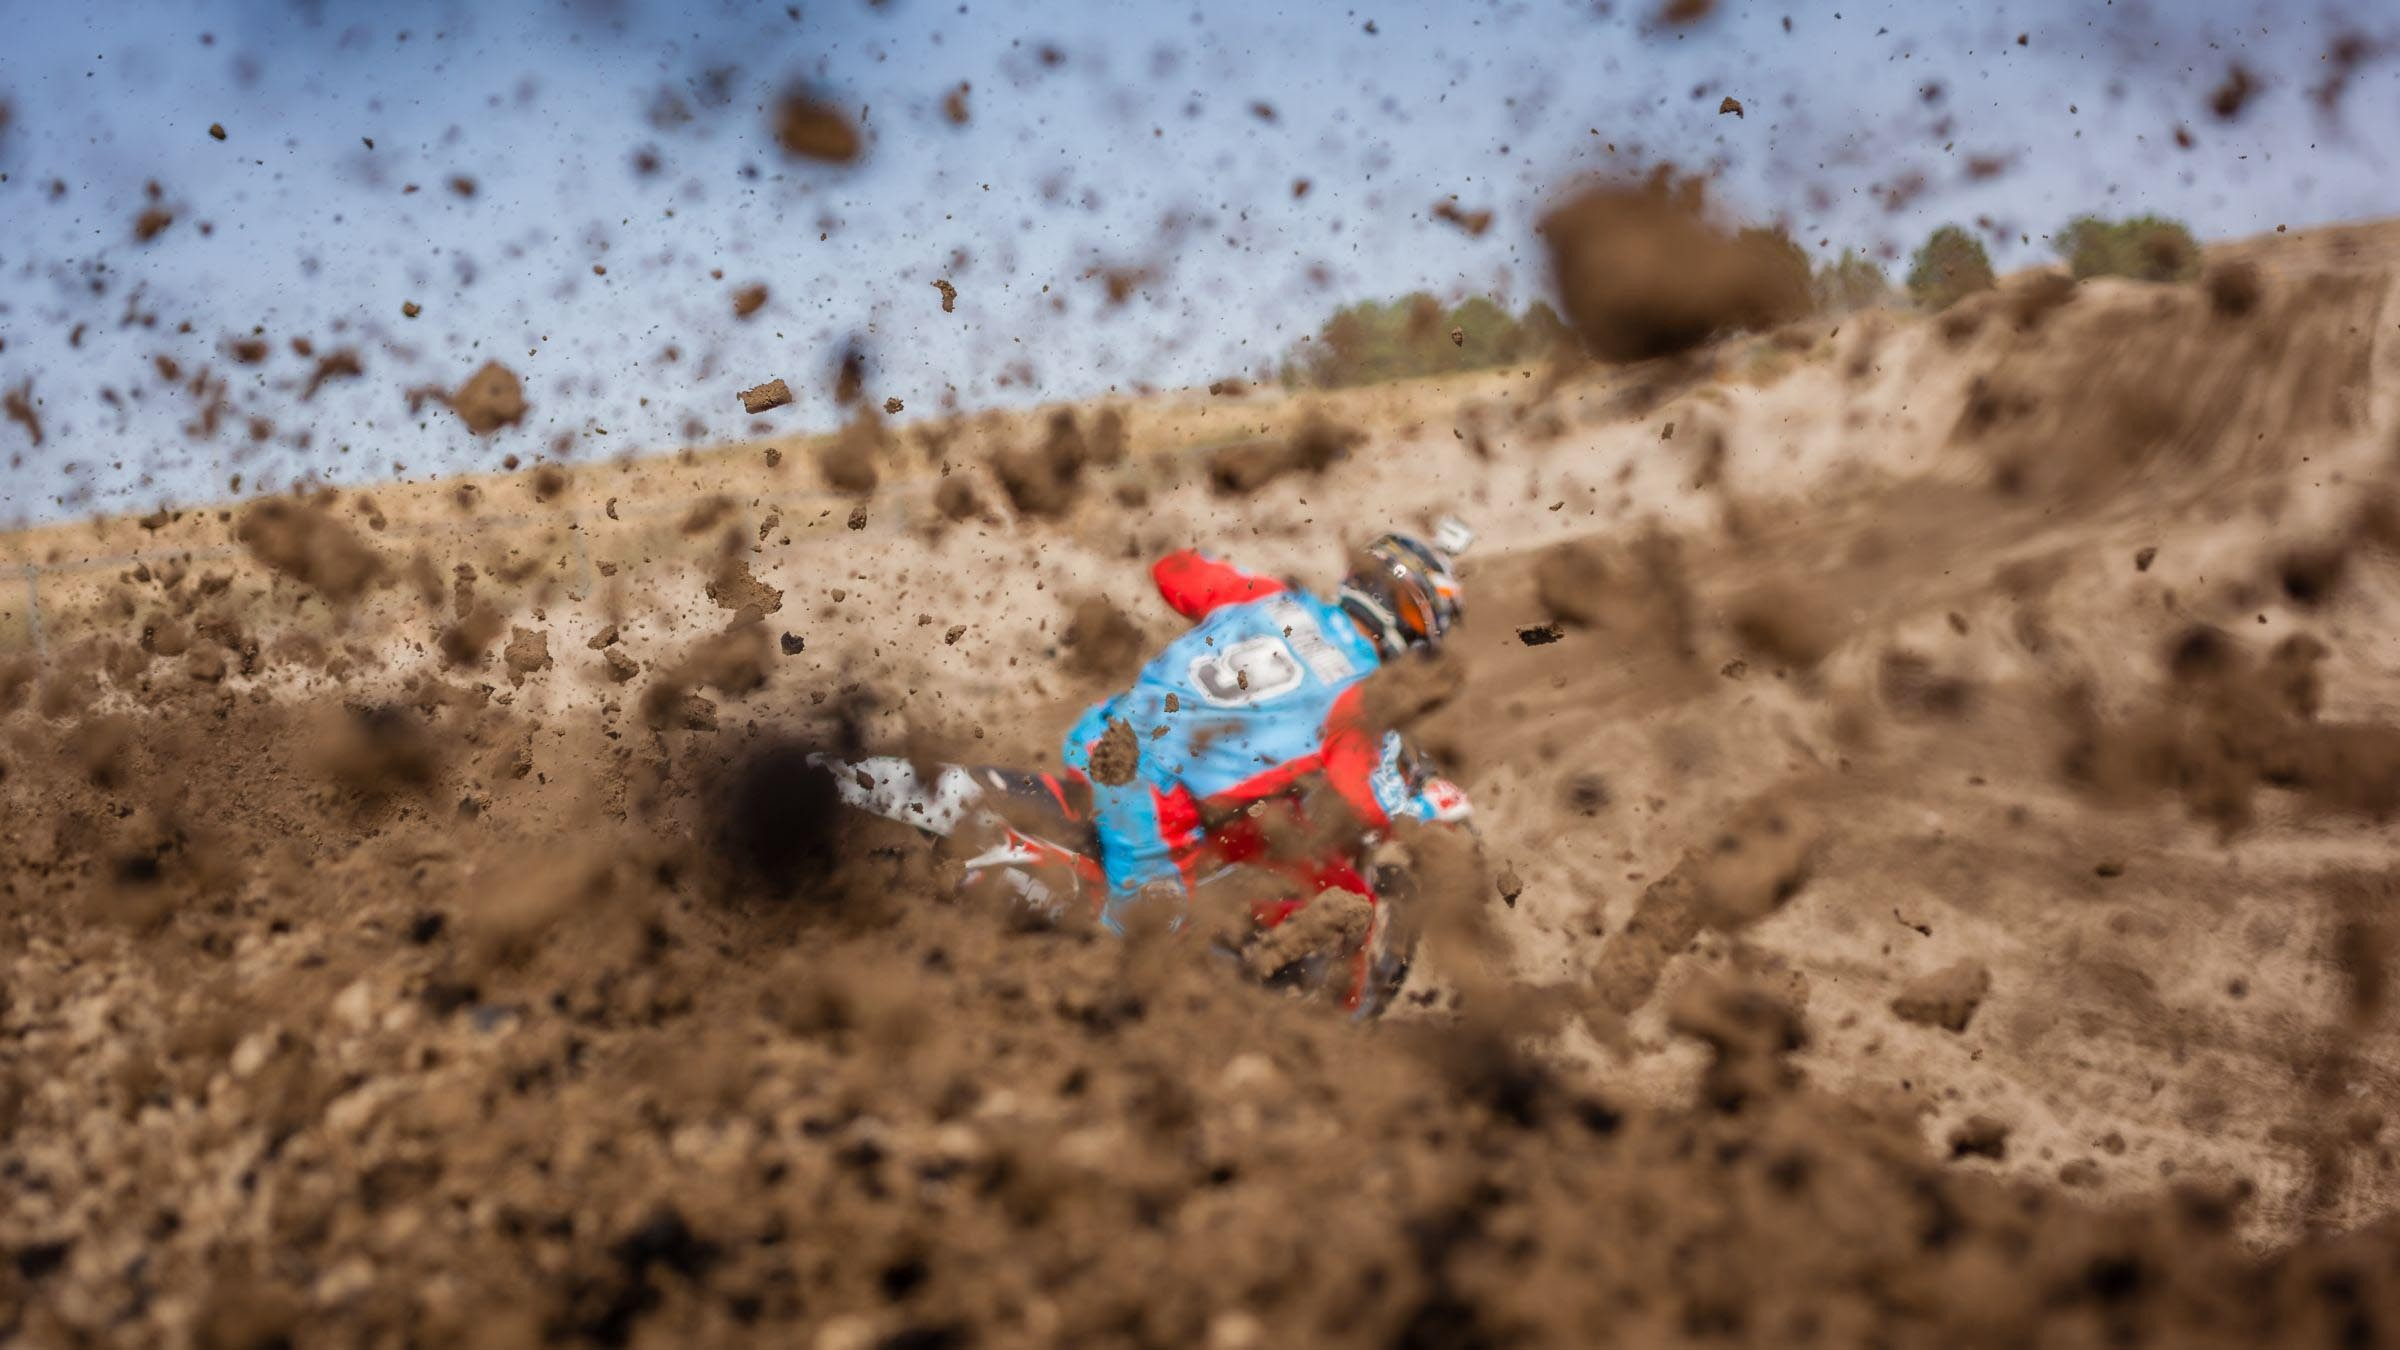 Your Muddy Nature Wants You to Play in It! (Blog)